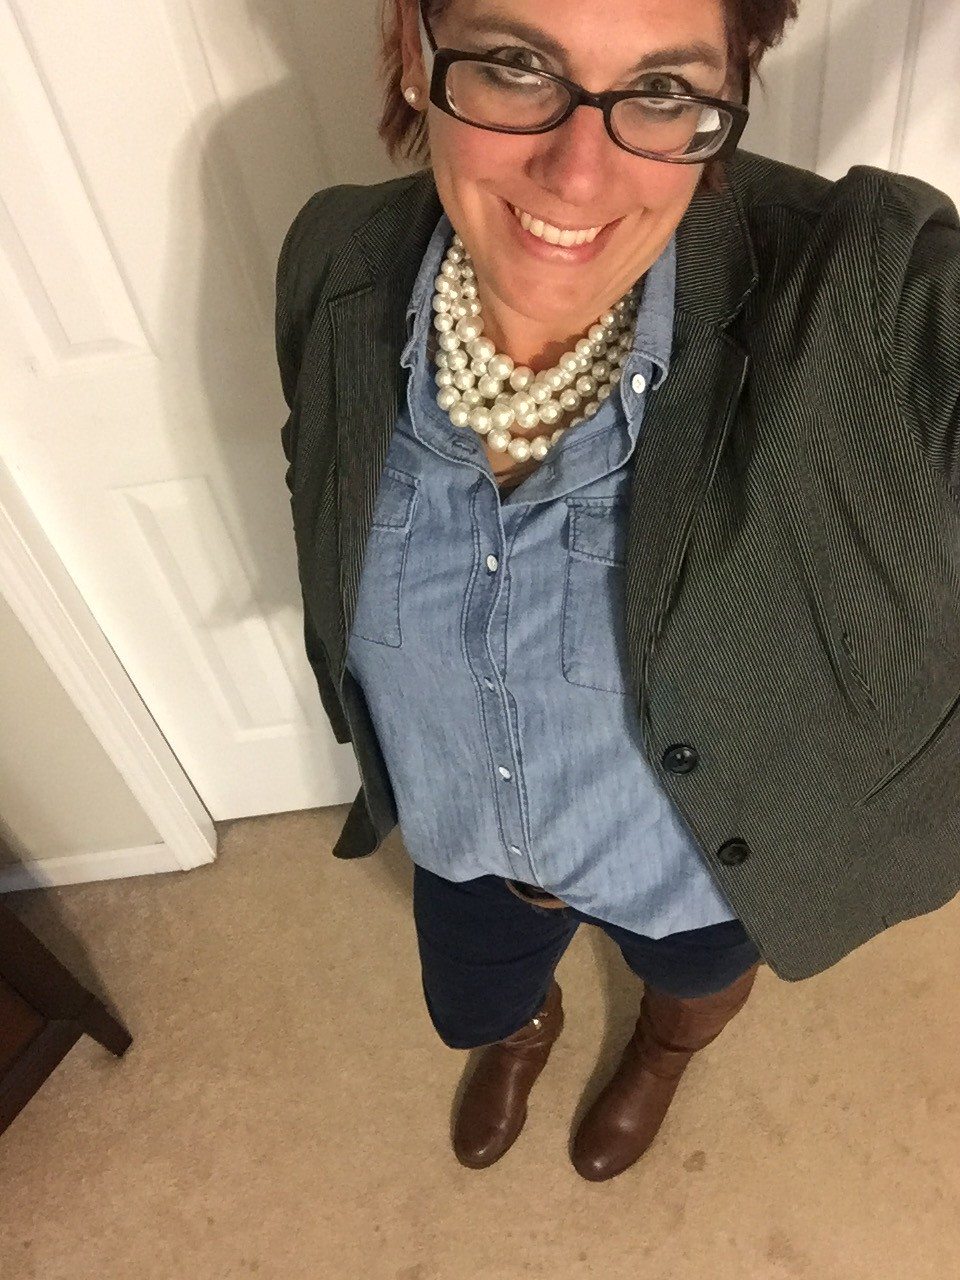 Double Denim and Pearls